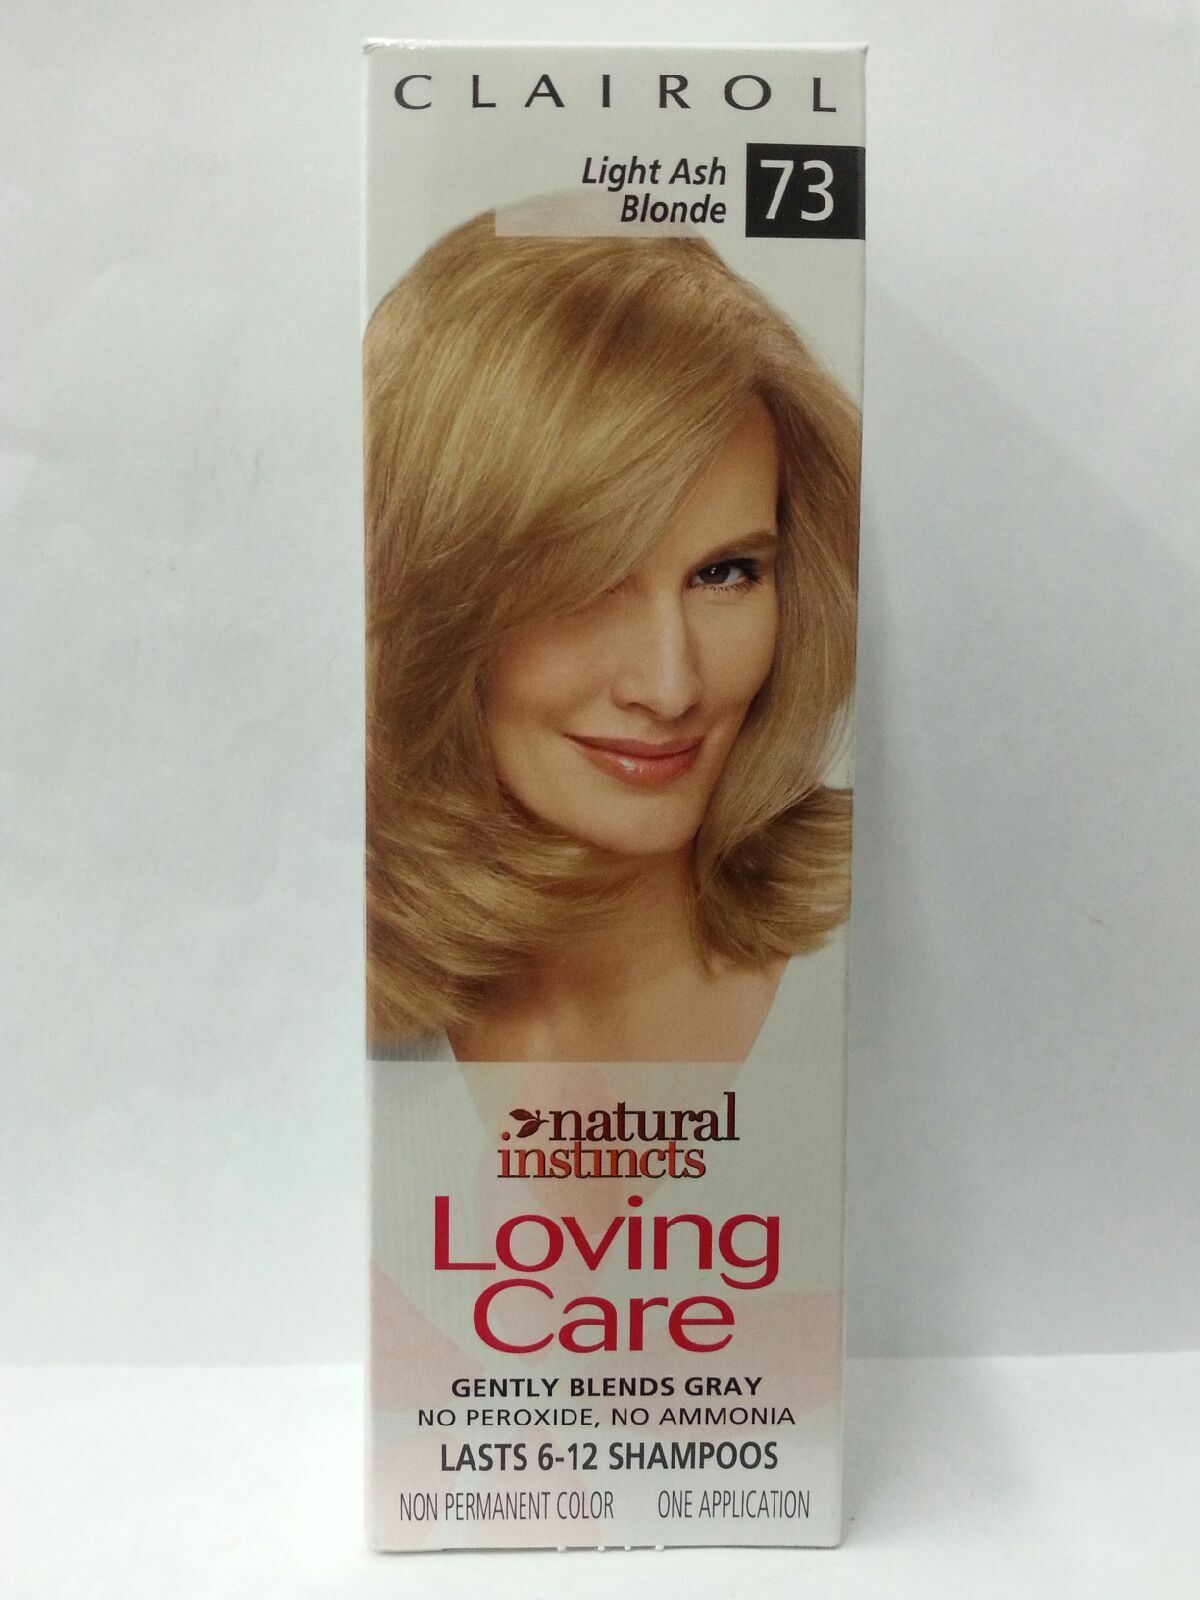 2 Clairol Loving Care Light Ash Blonde 73 Natural Instincts Hair Color Htf